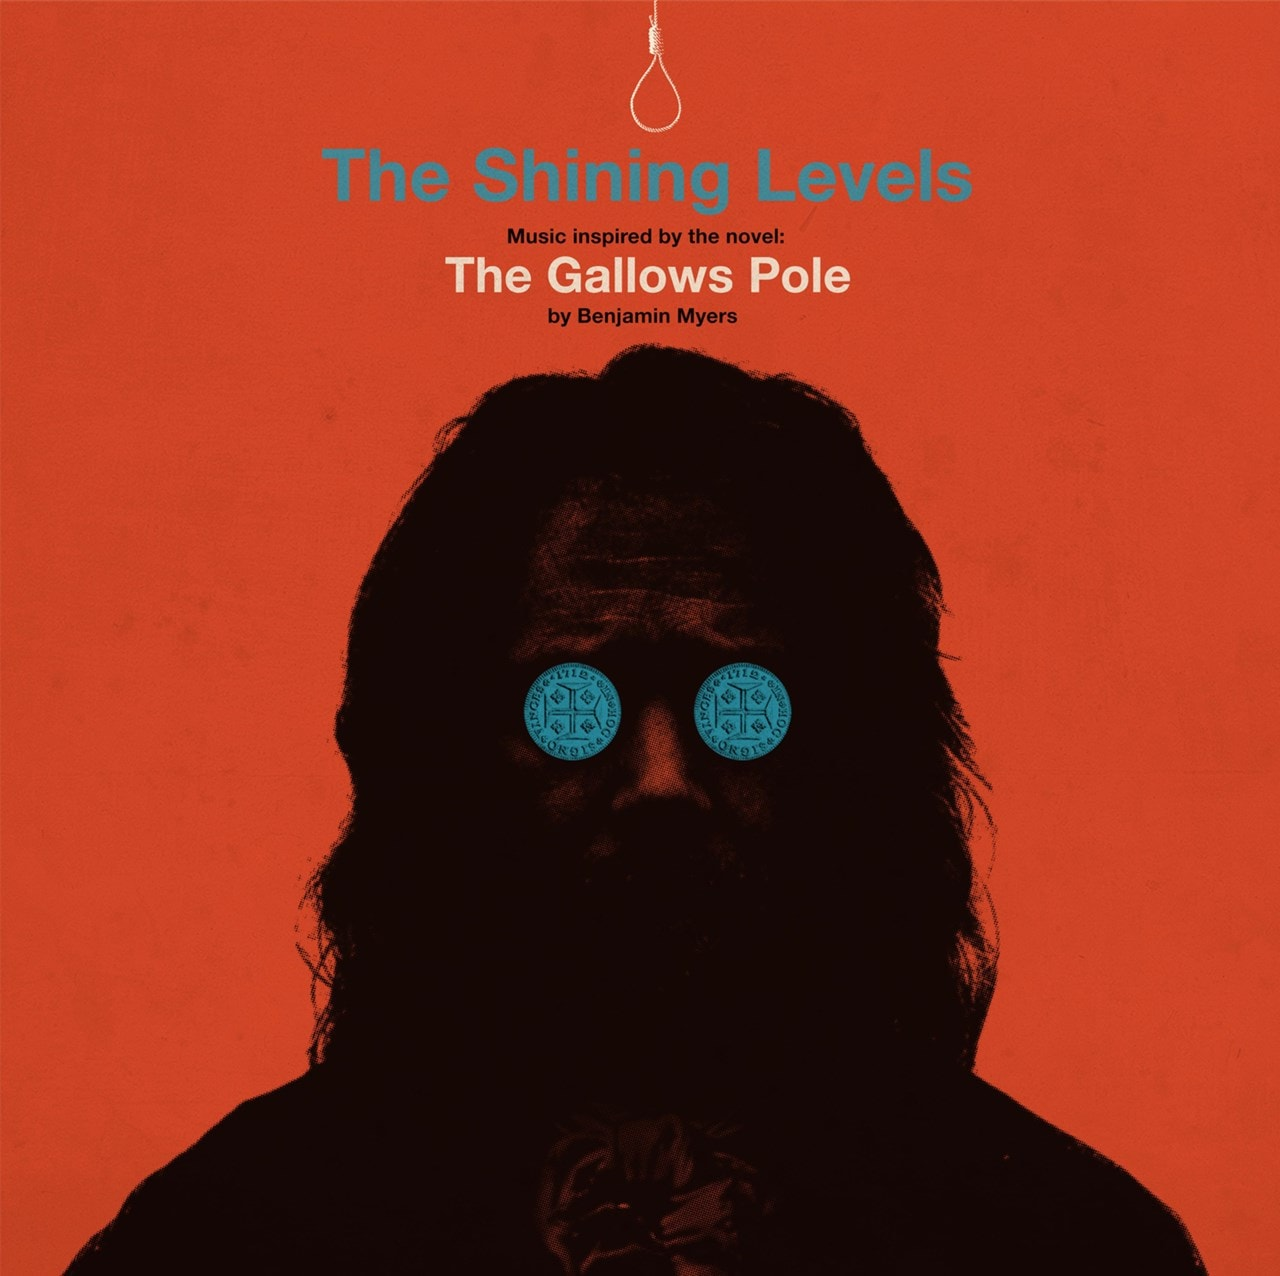 The Gallows Pole: Music Inspired By the Novel By Benjamin Myers - 1